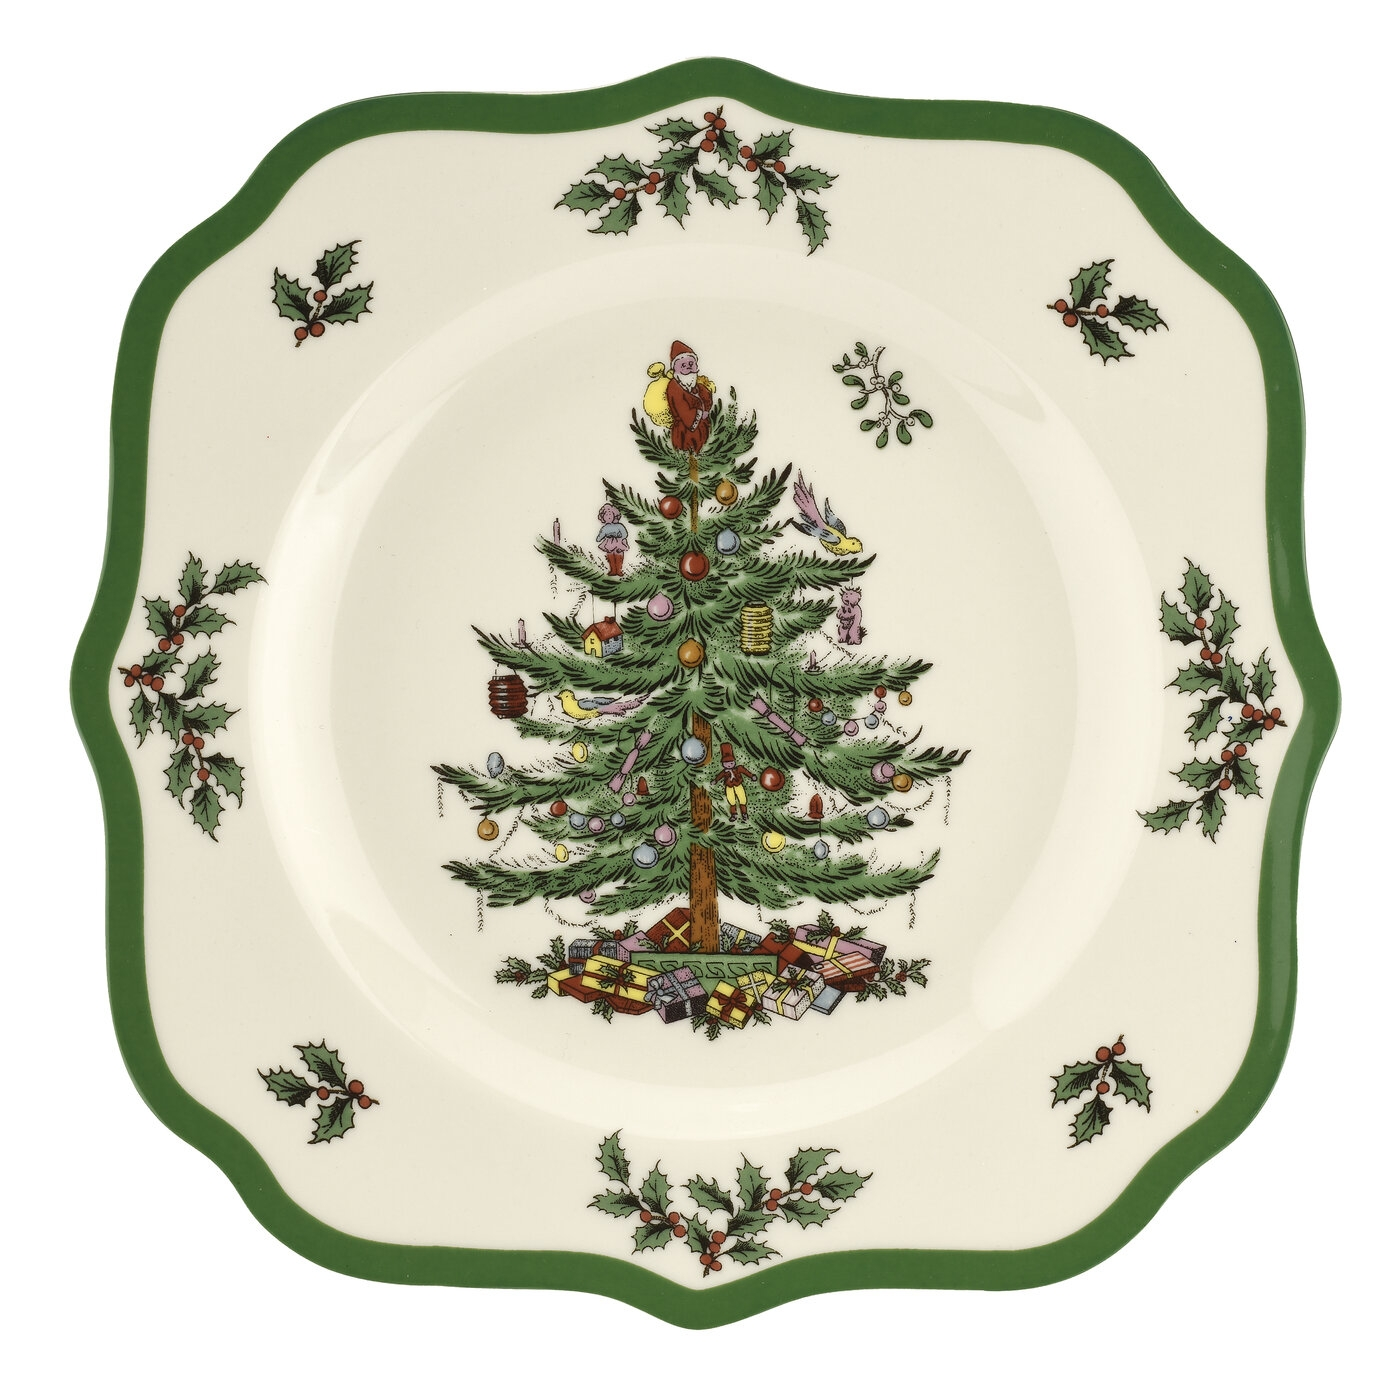 Spode Christmas Tree 2019 Scalloped Salad Plate 9 Inch image number 0